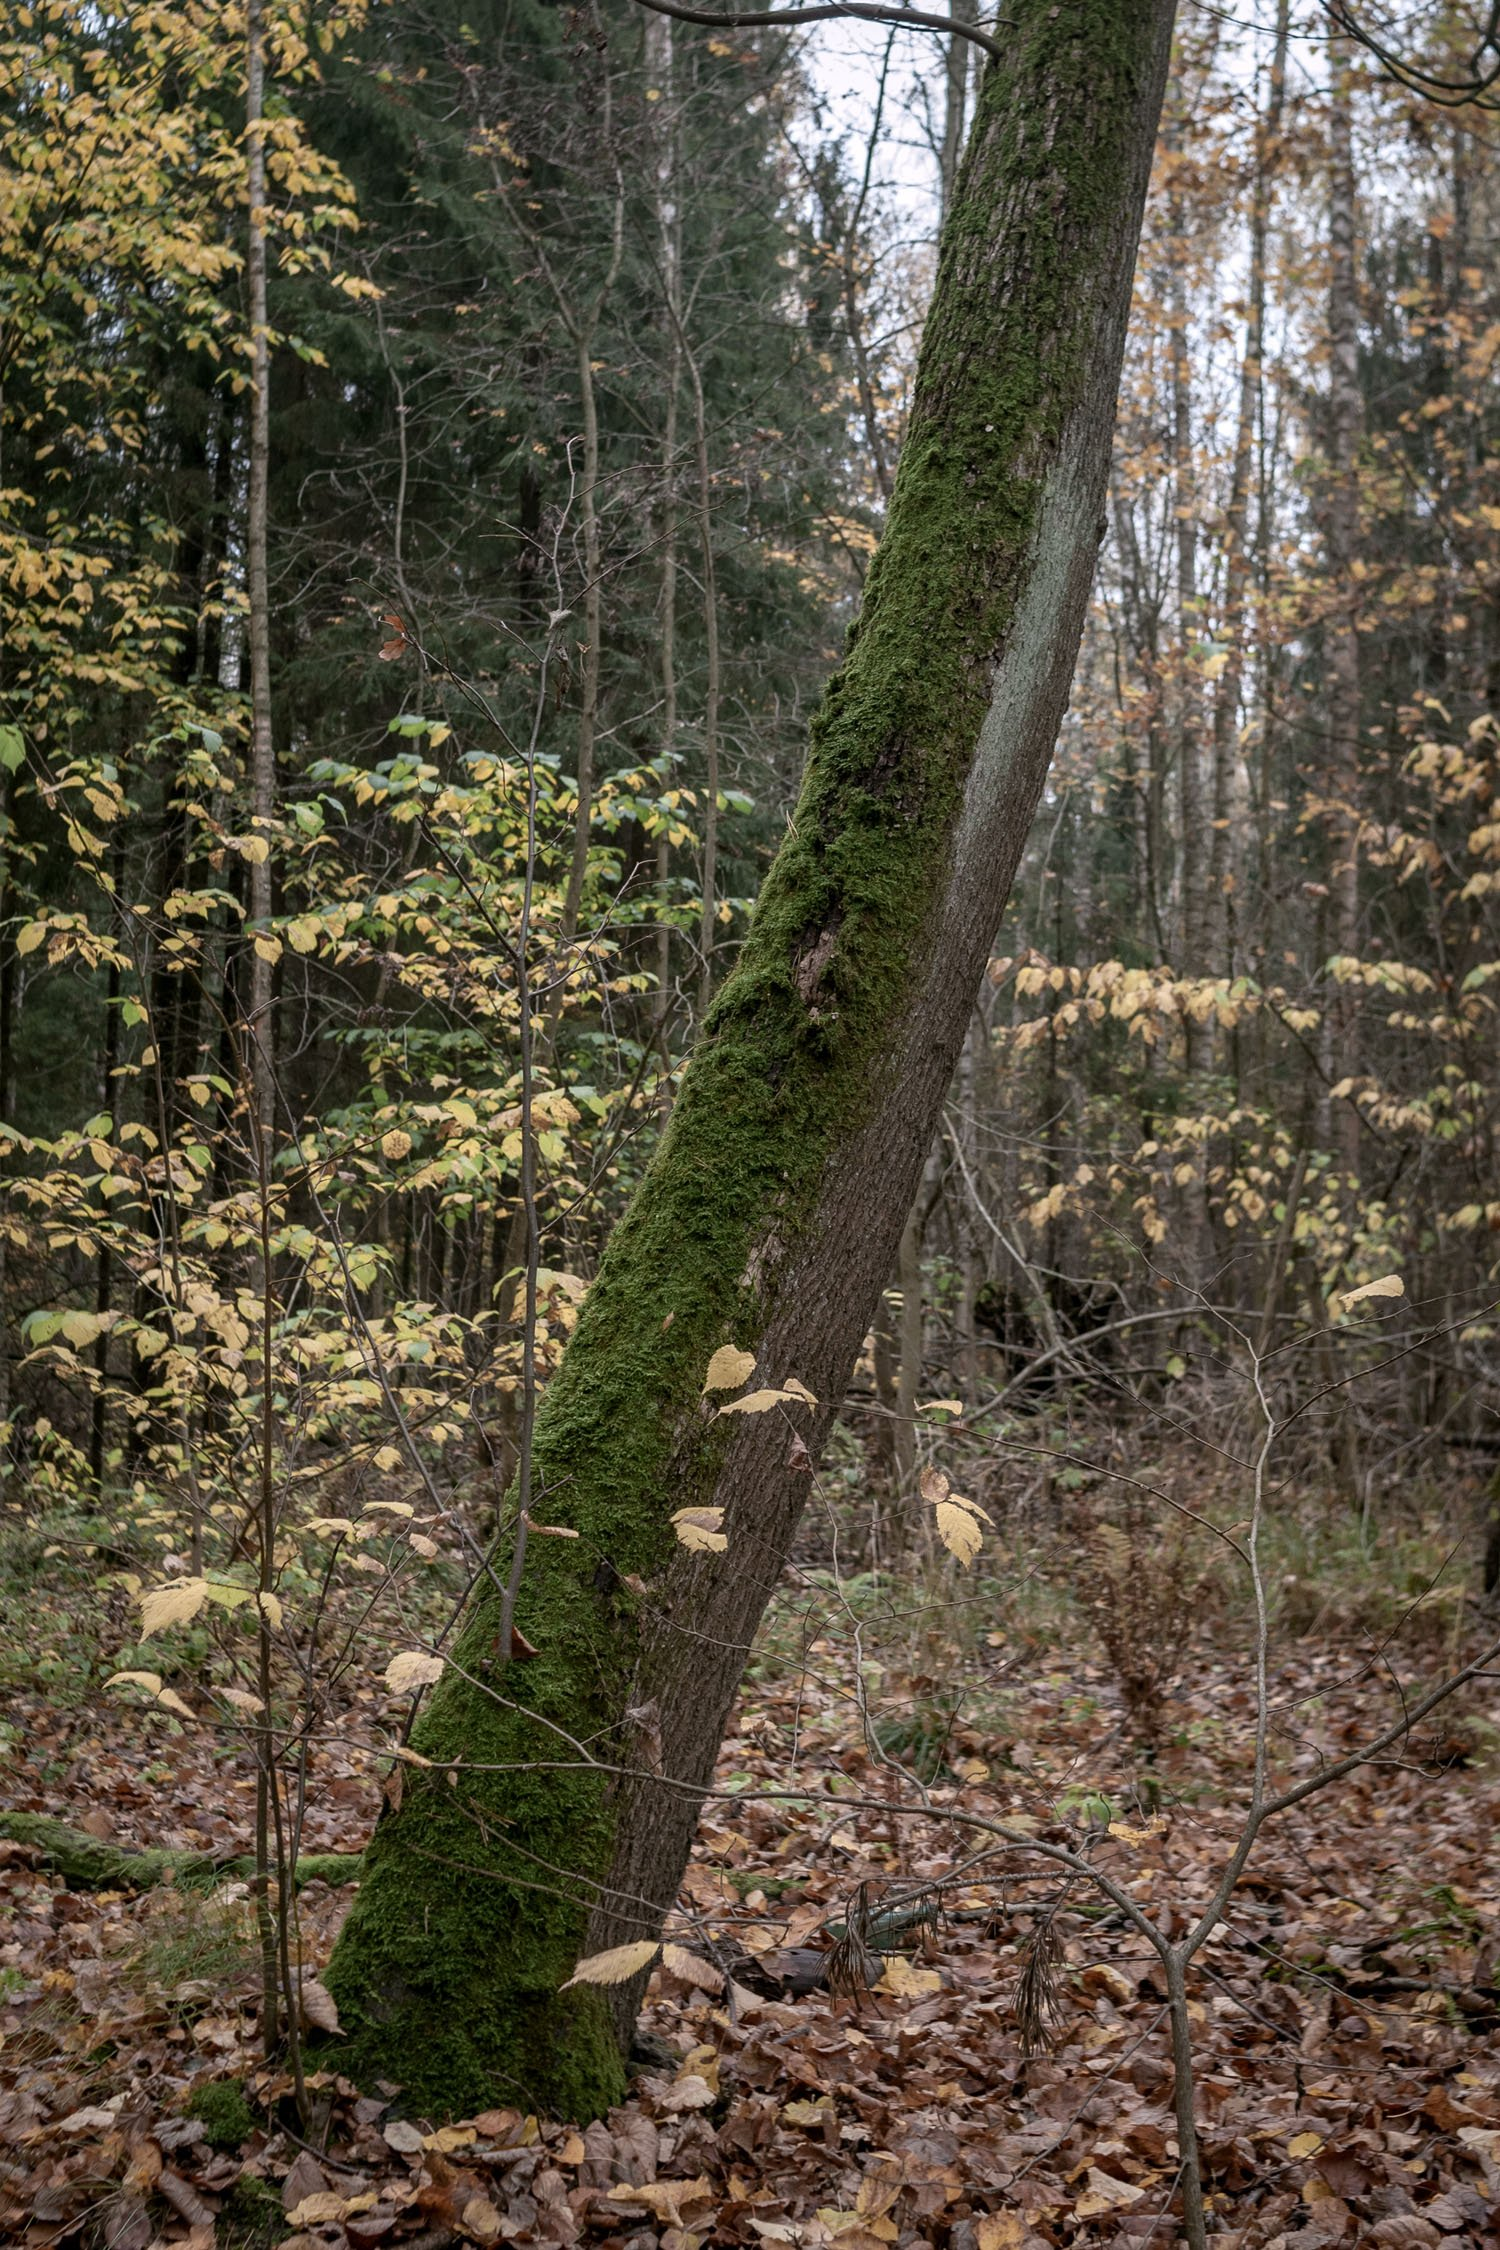 According to folk legends, moss grows on the north side of trees, which helps with navigation.